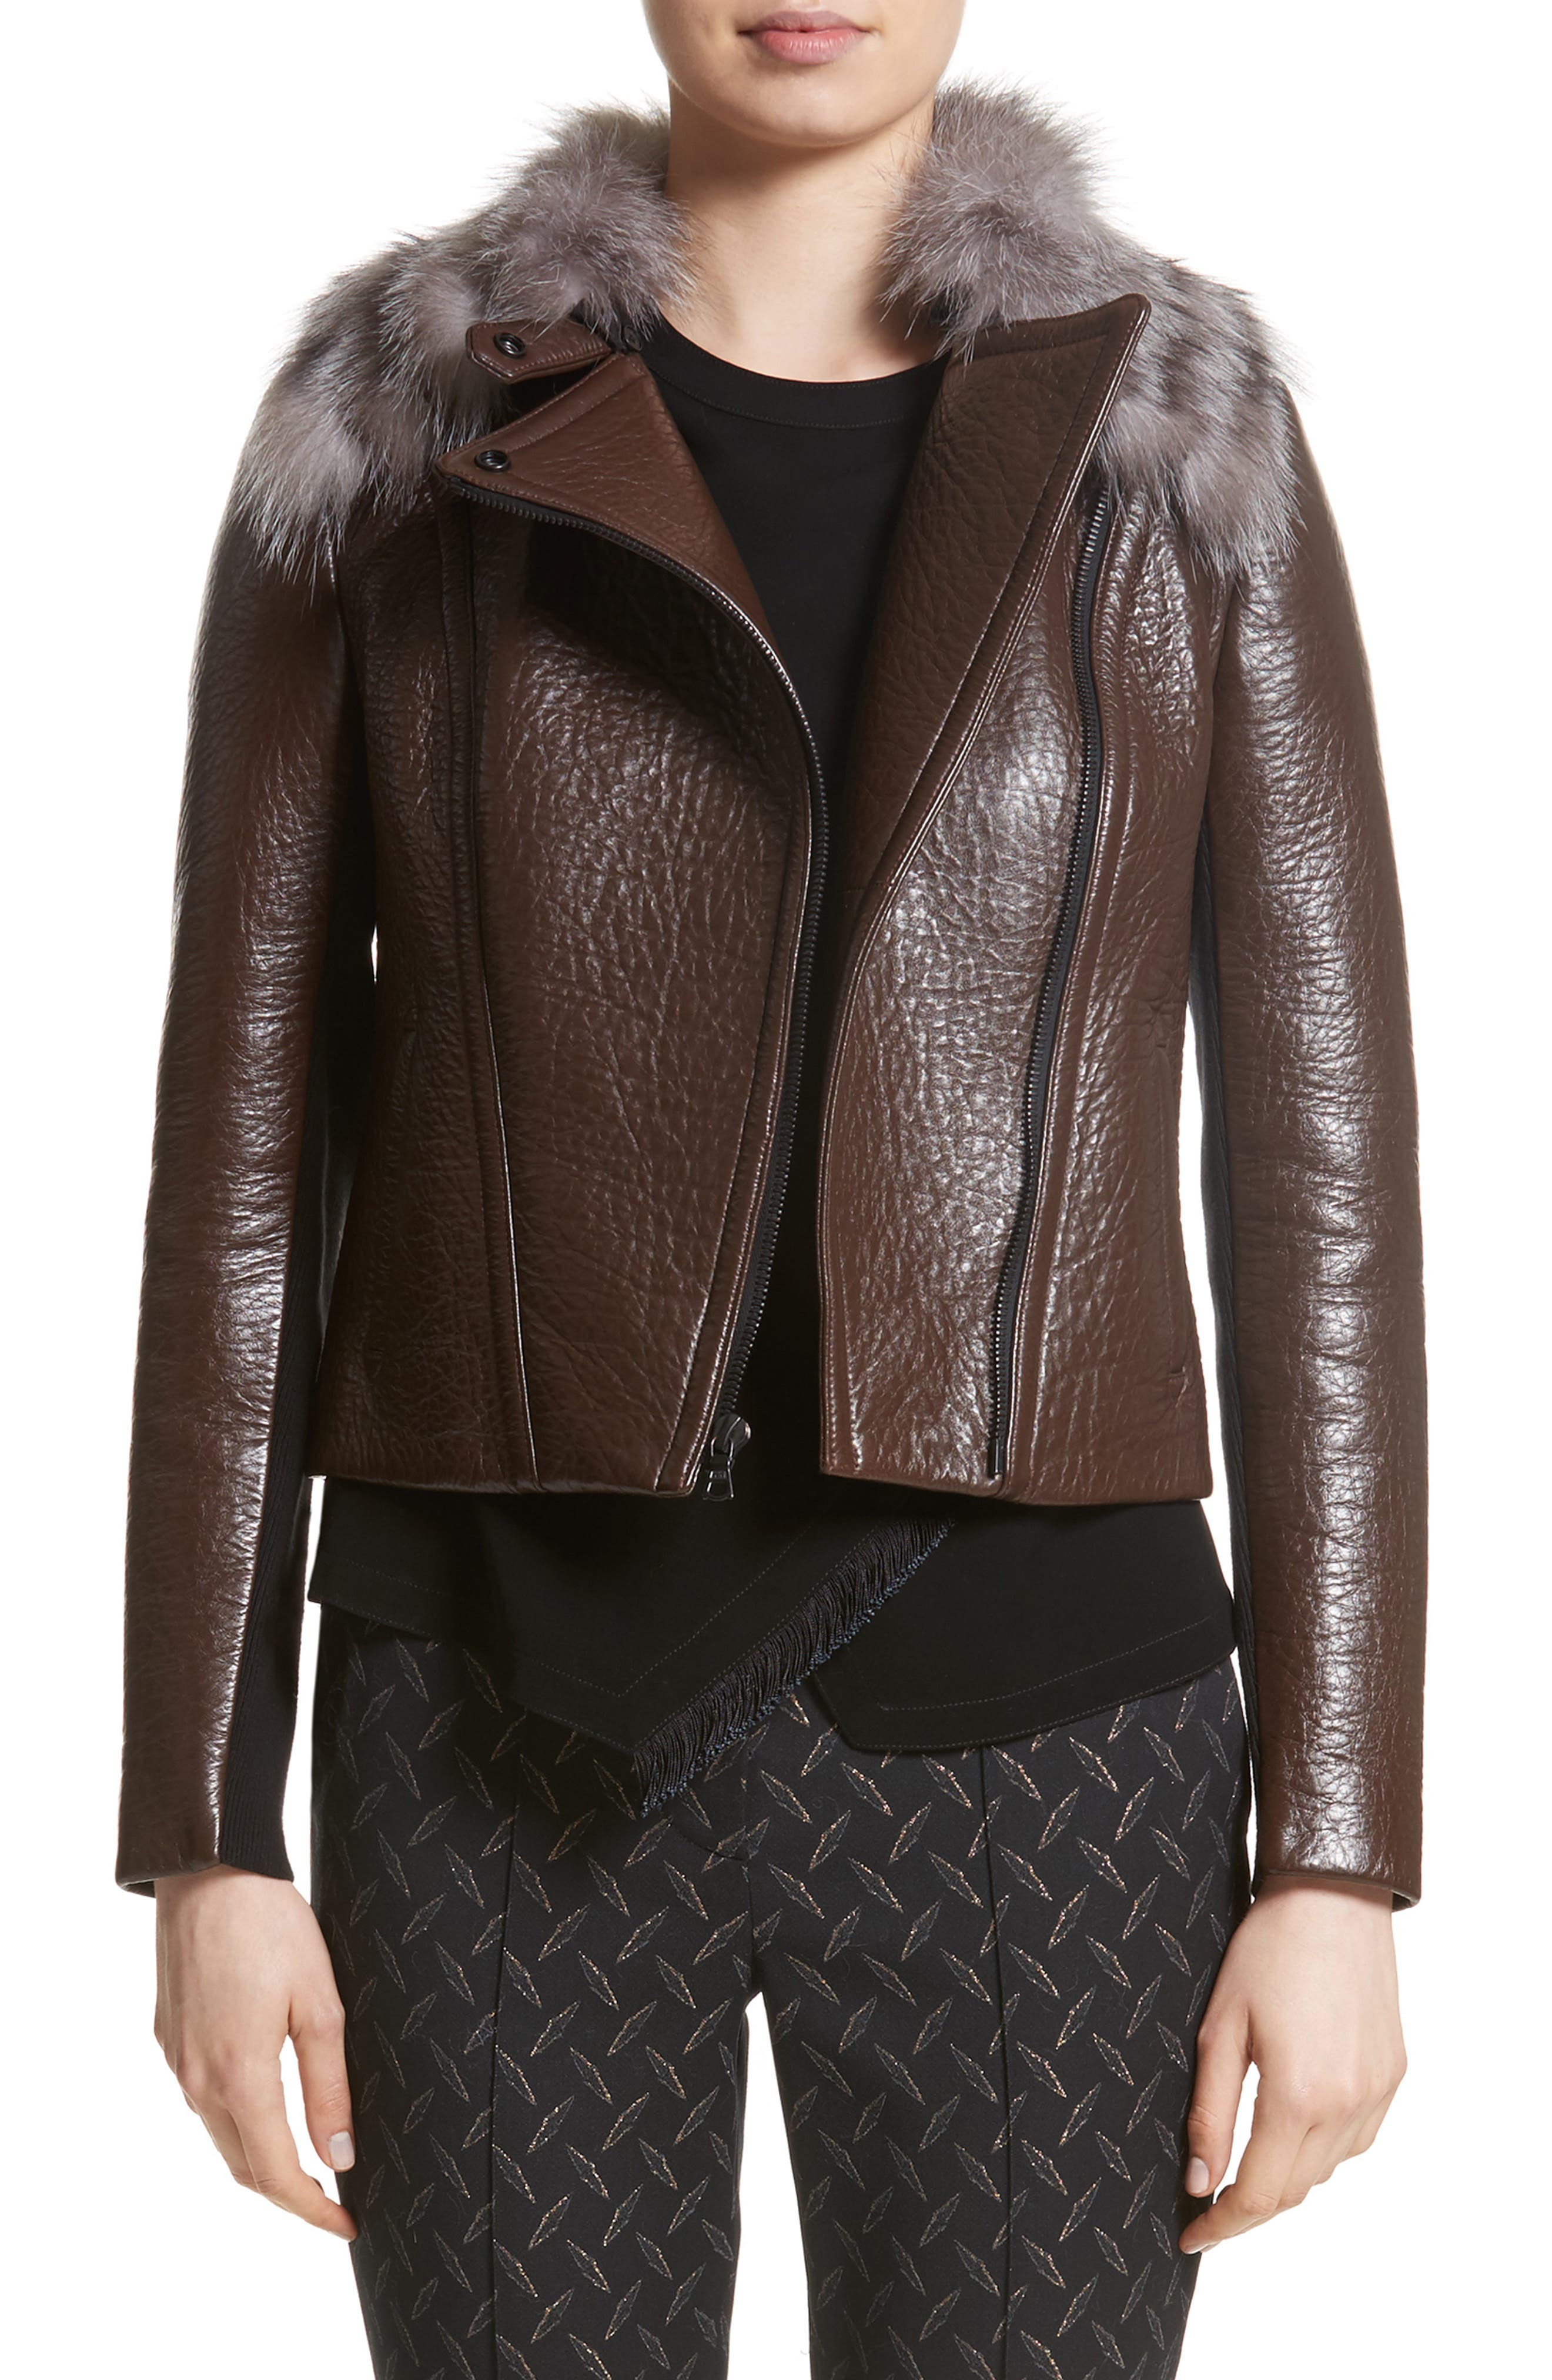 Main Image - Yigal Azrouël Bonded Moto Leather Jacket with Removable Genuine Fox Fur Collar